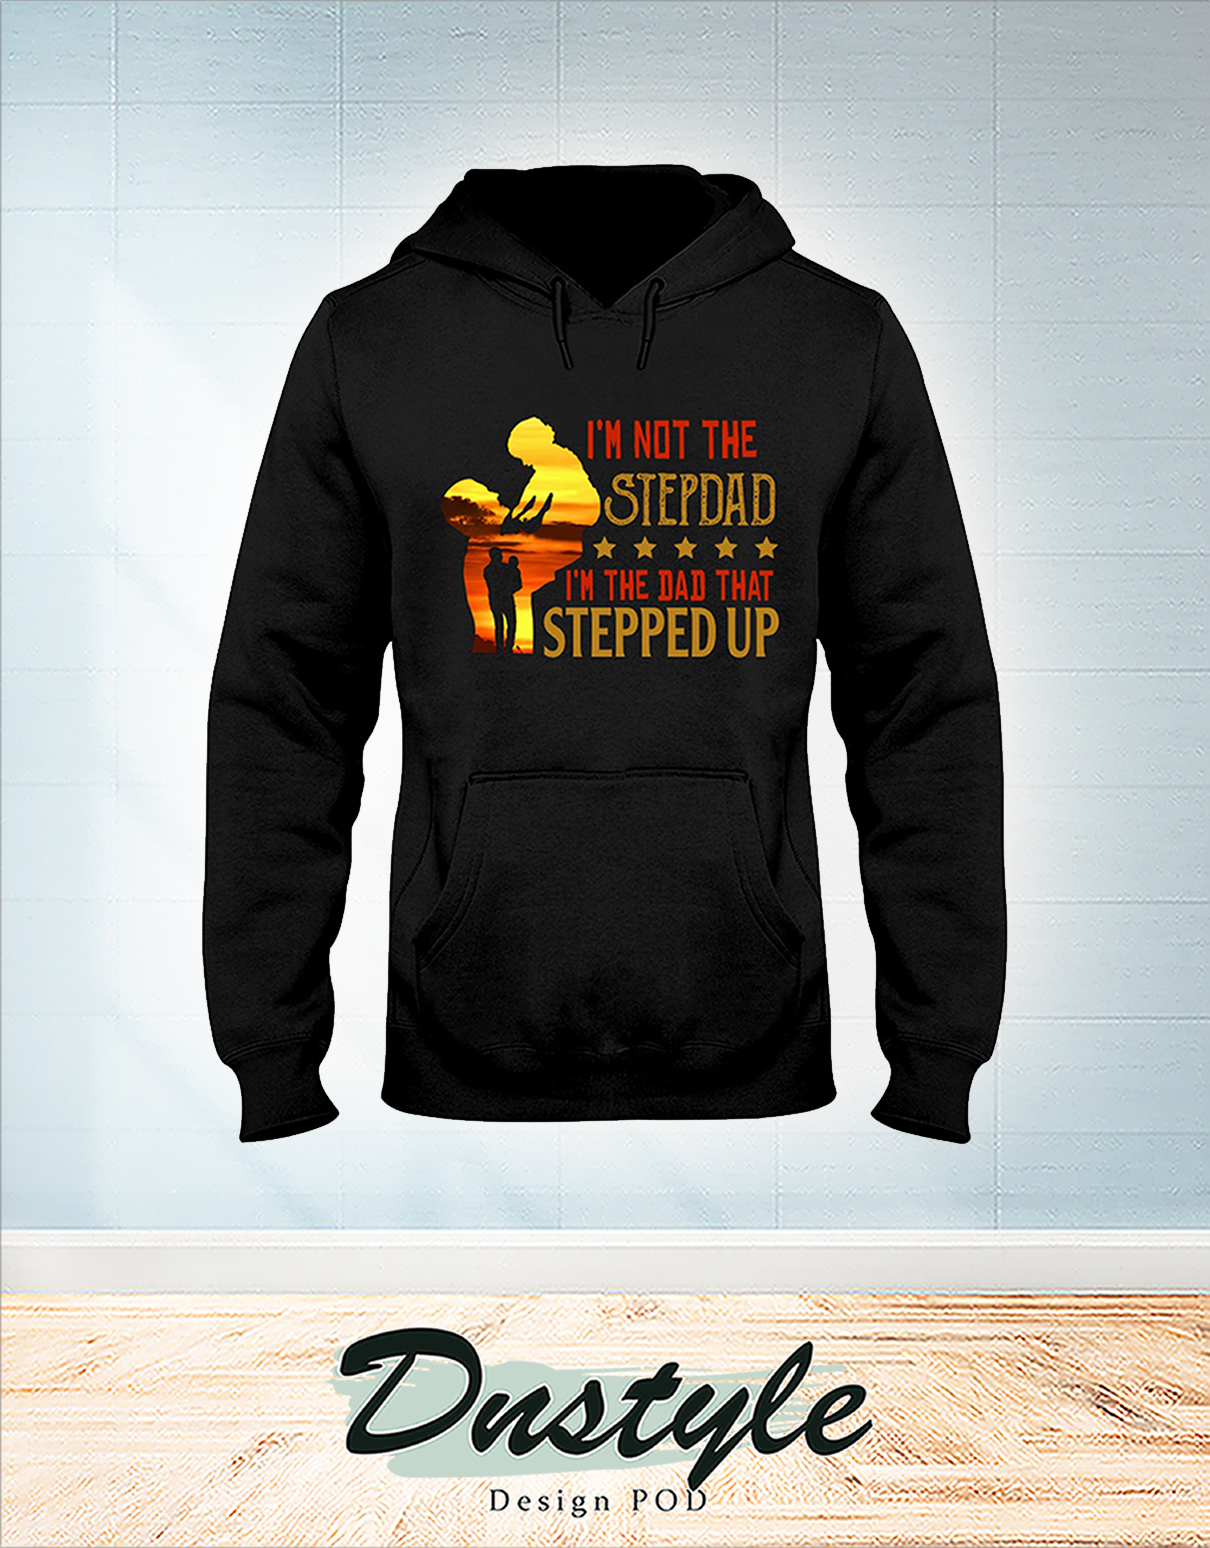 I'm not the stepdad I'm the dad that stepped up hoodie